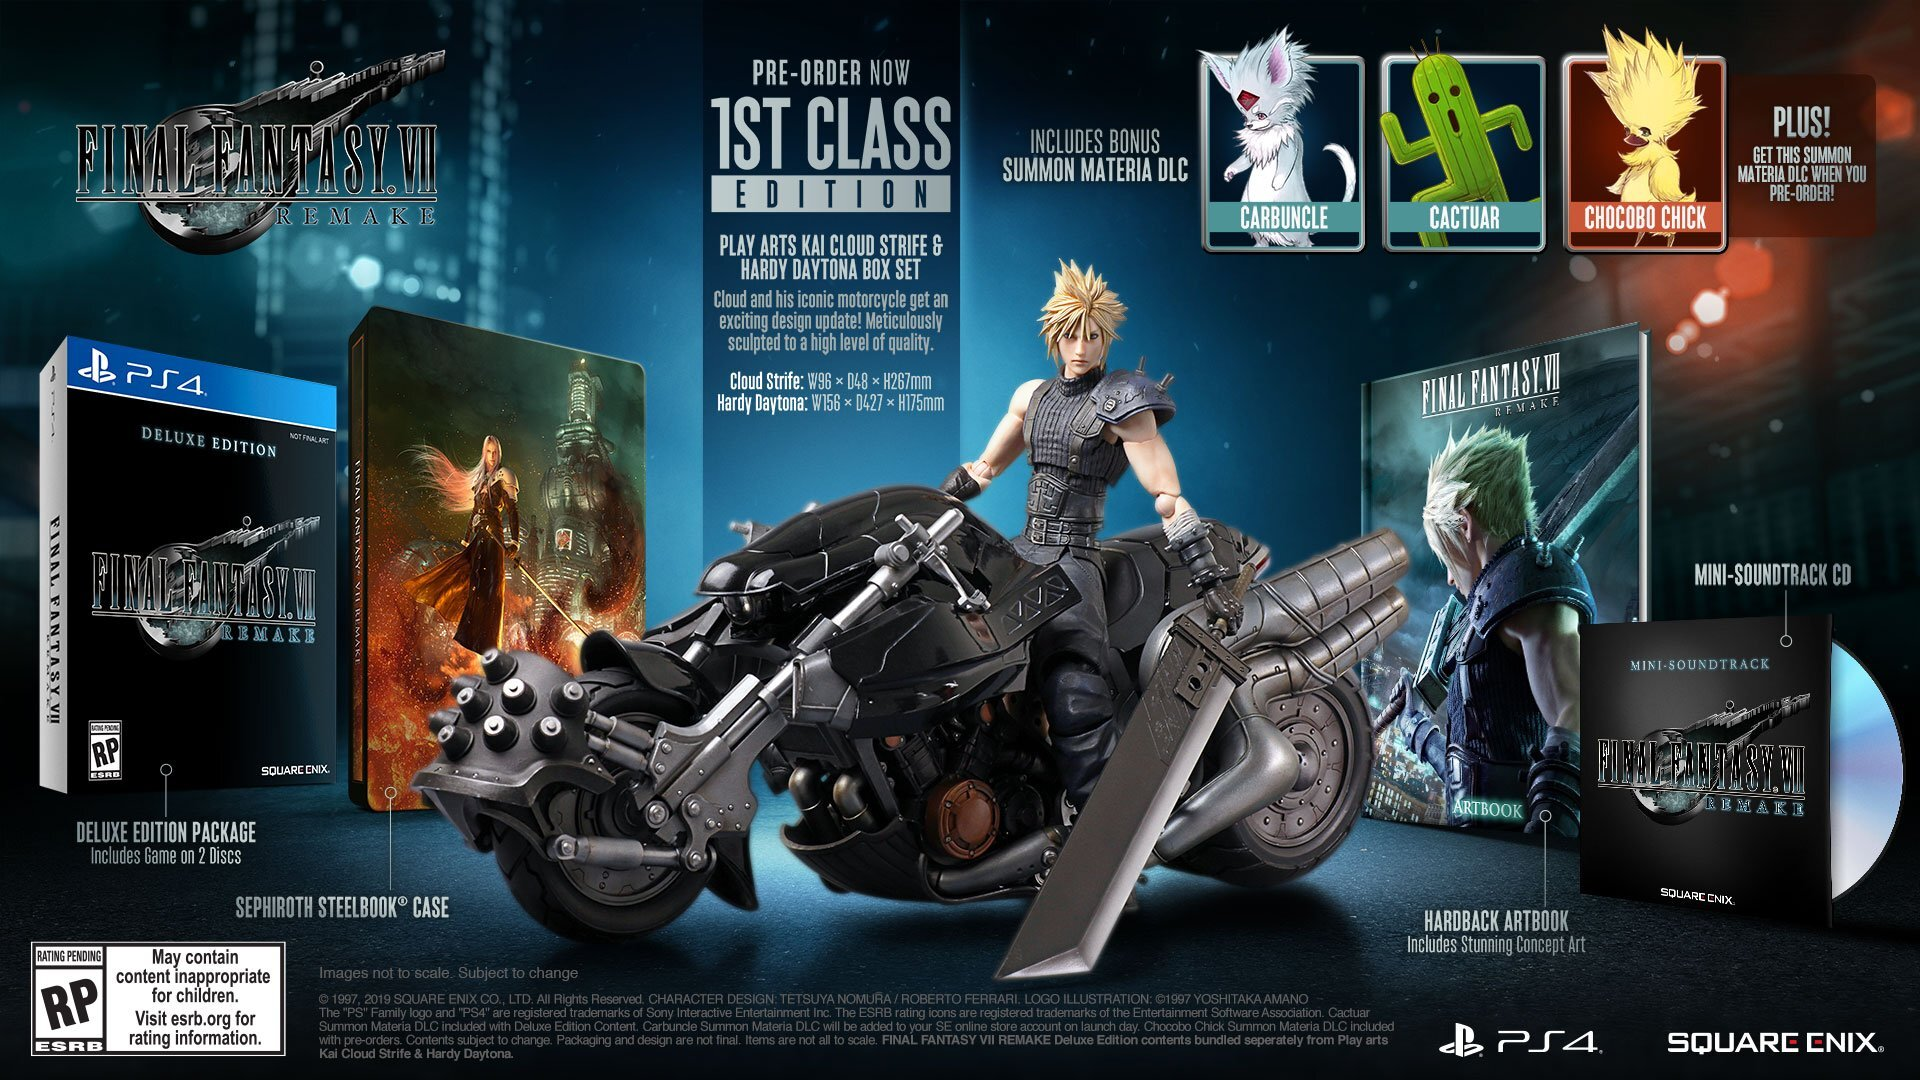 Final Fantasy VII Remake 1st Class Edition